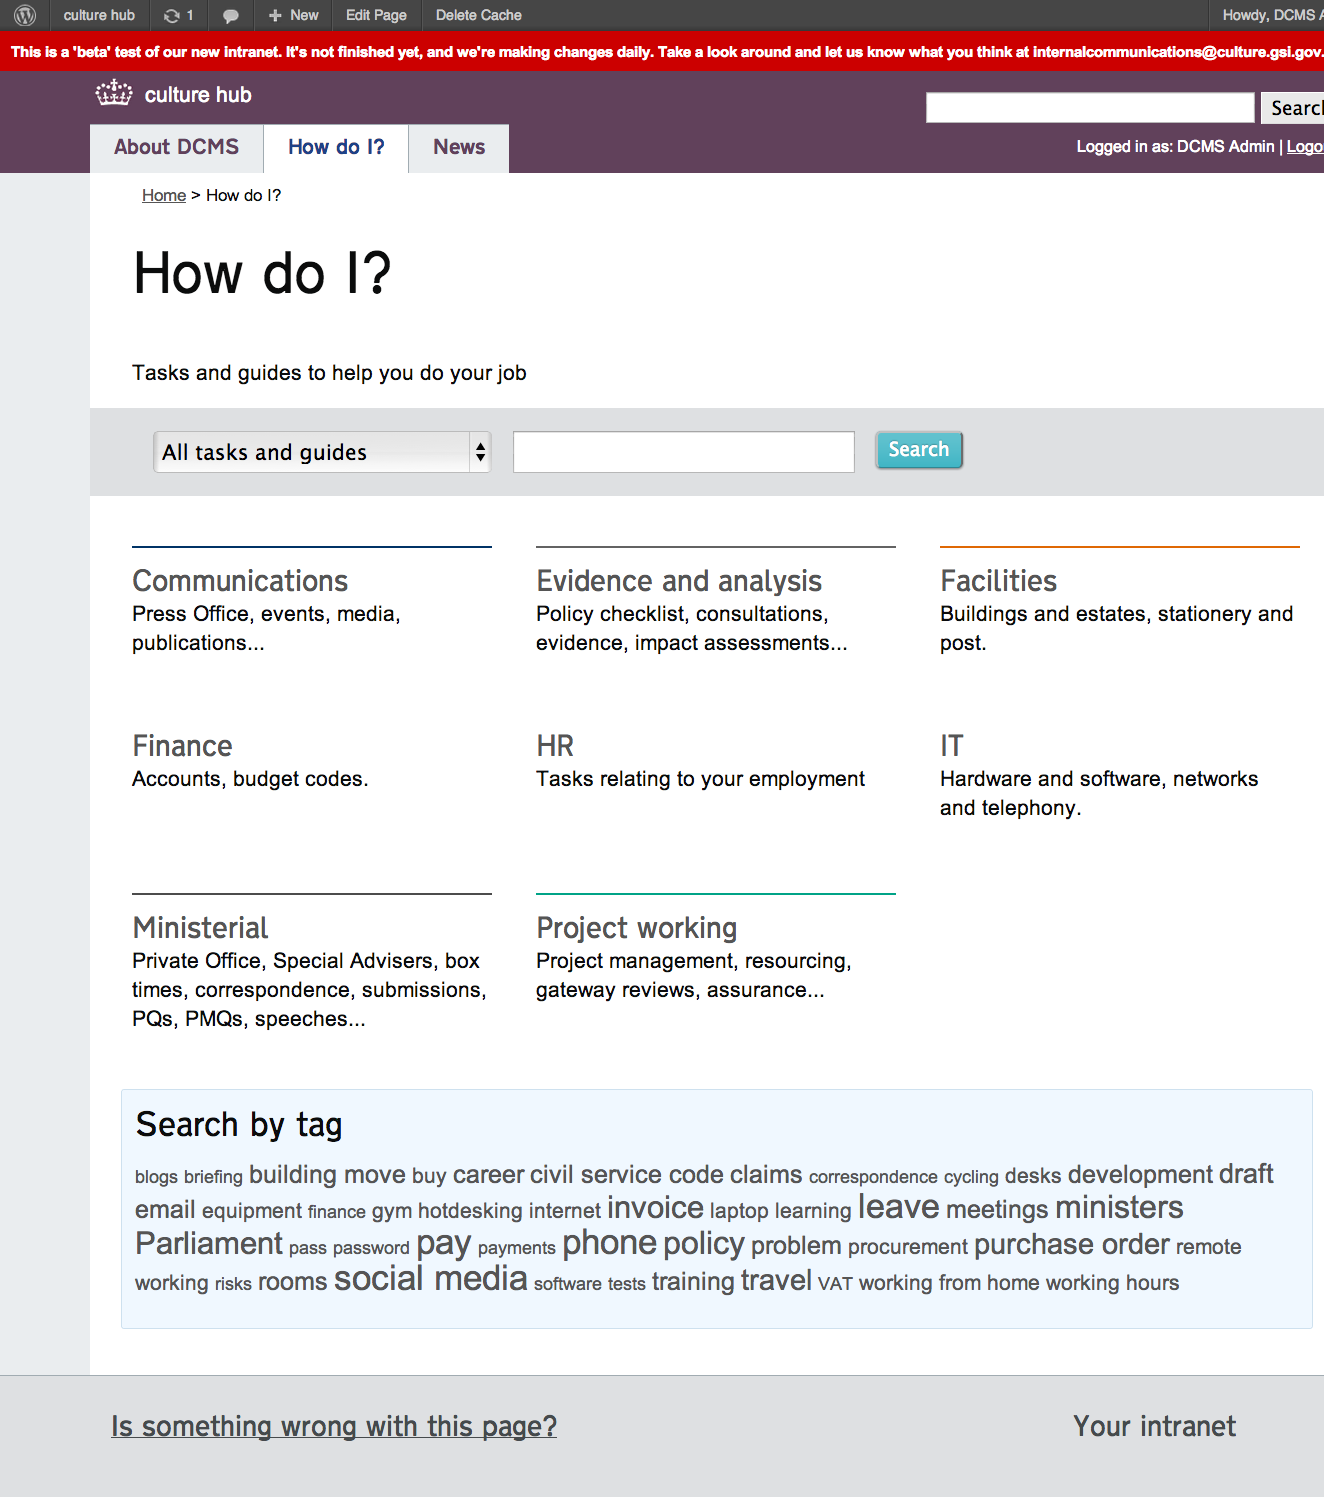 The 'How do I?' landing page provides several ways for staff to get to the detailed information.